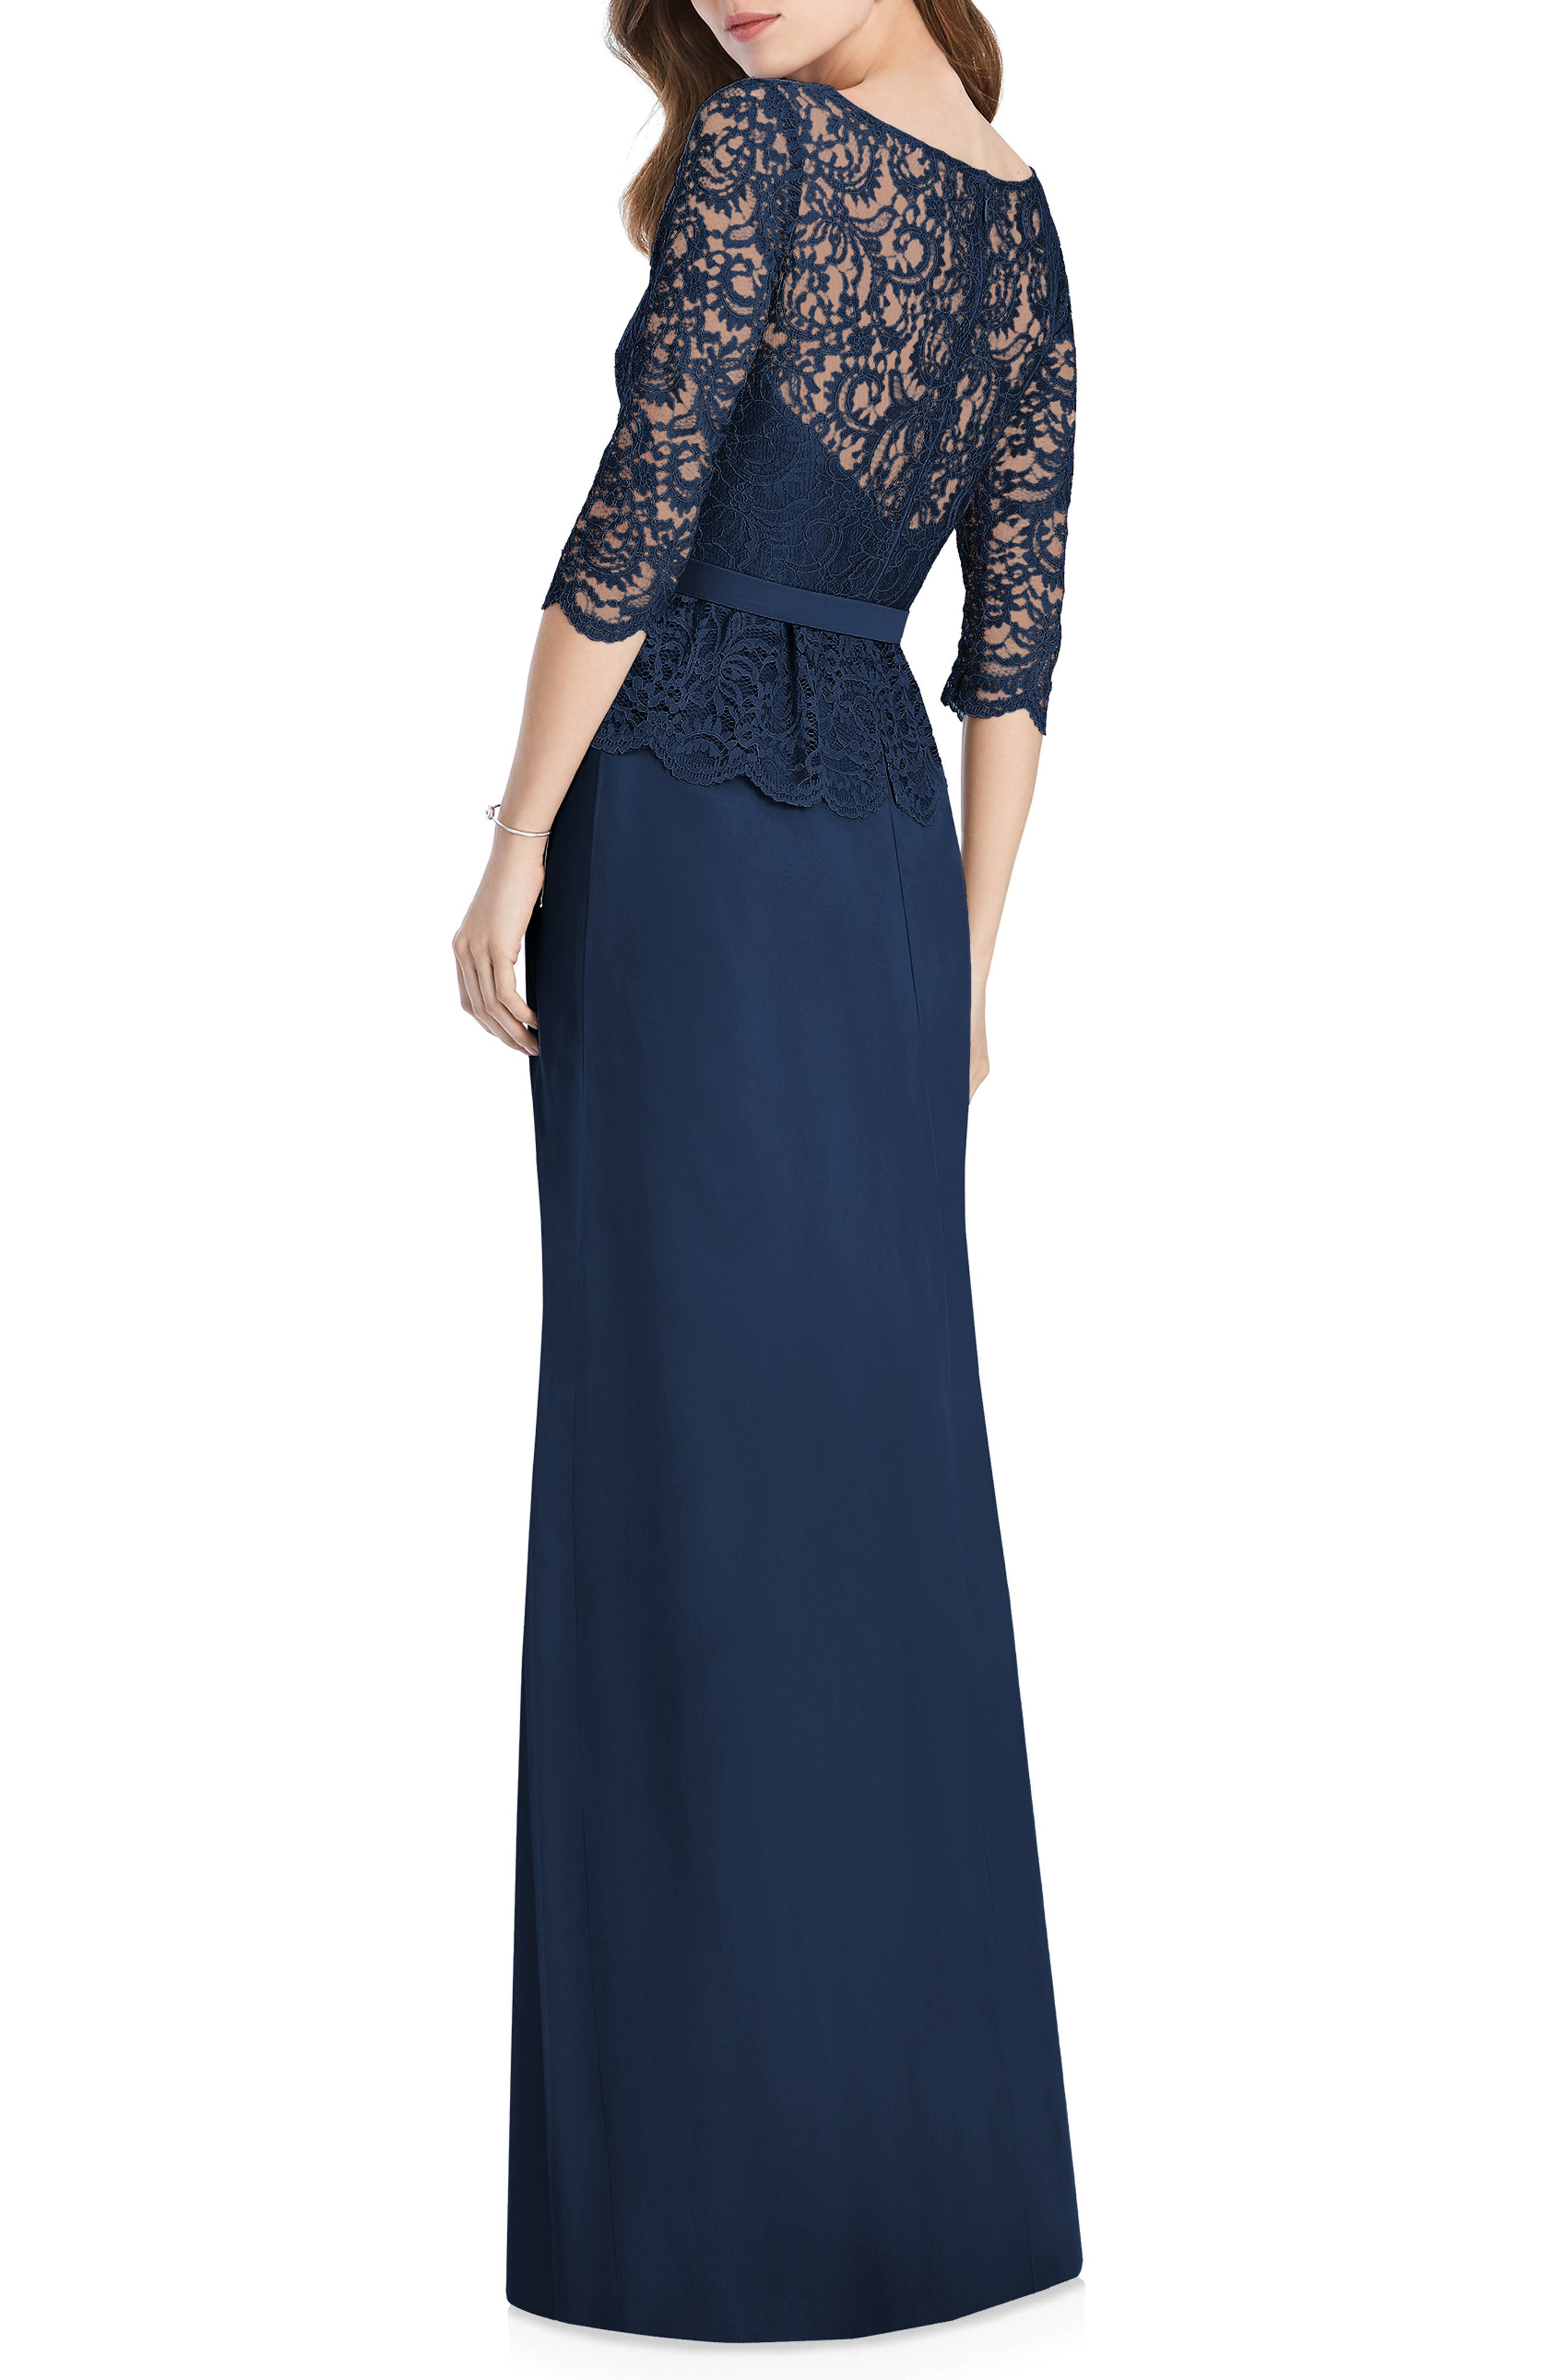 JENNY PACKHAM, Lux Chiffon Gown, Alternate thumbnail 2, color, MIDNIGHT